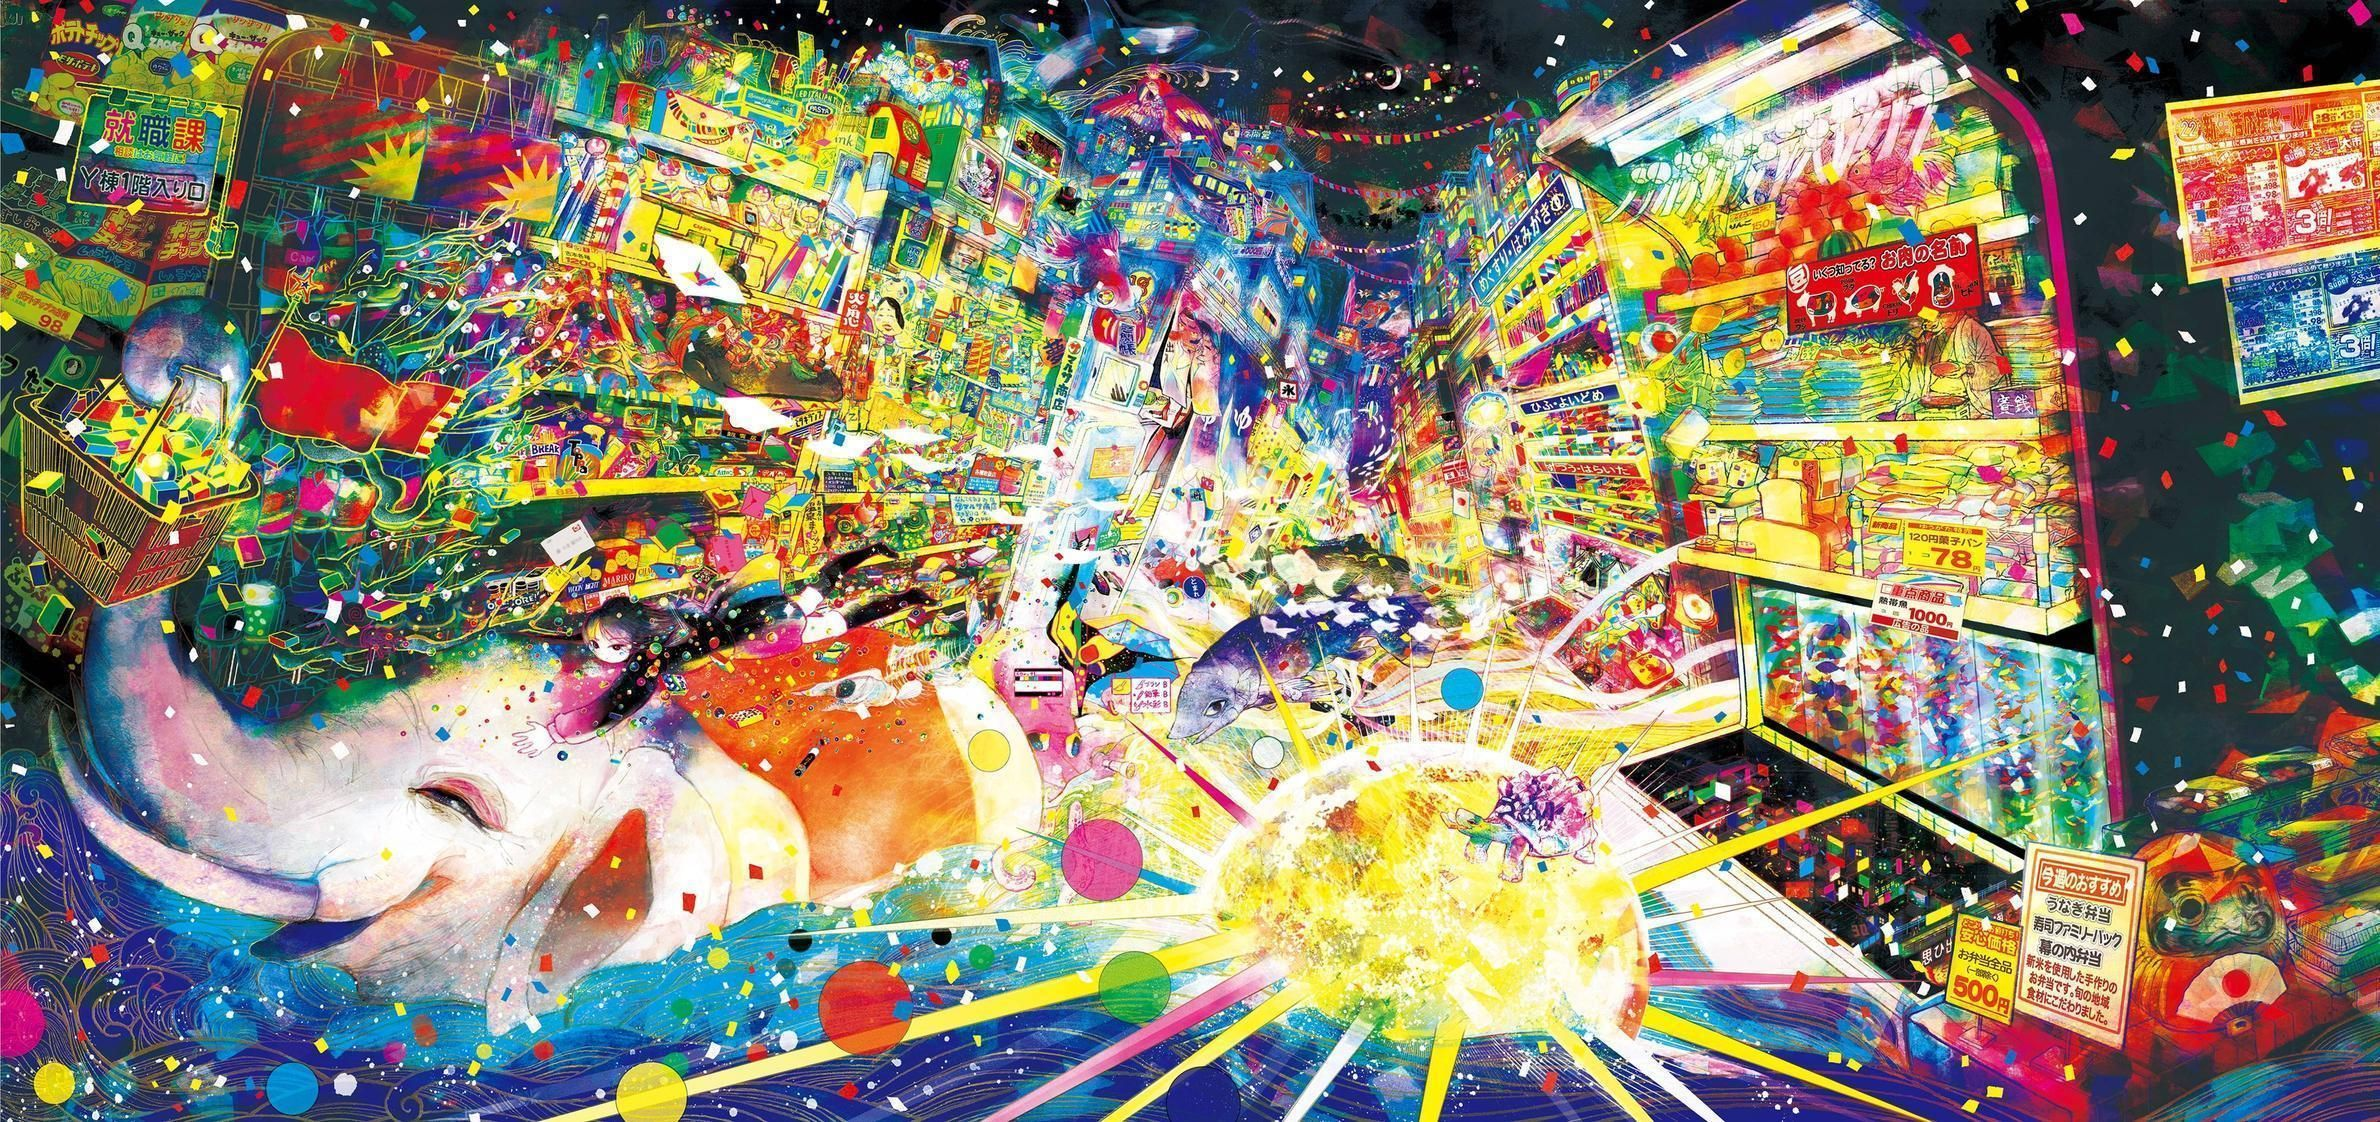 trippy wallpapers hd wallpaper cave | news to go 4 | pinterest